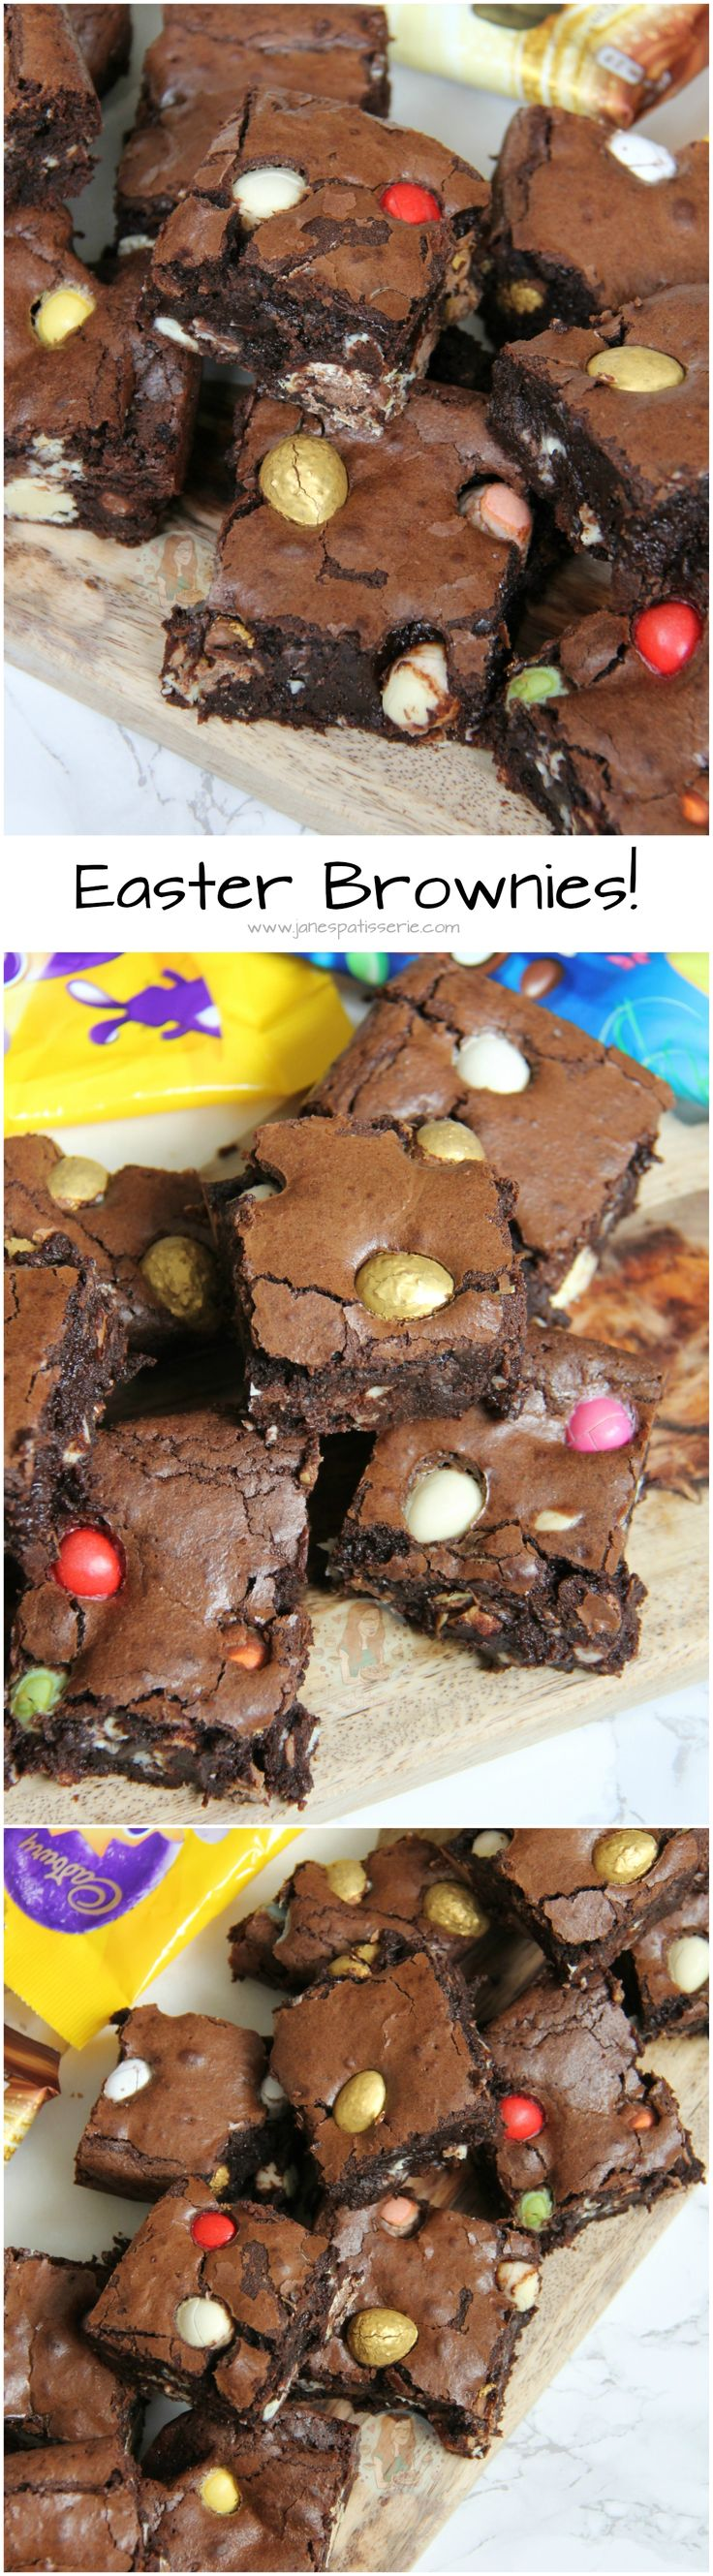 Easter Brownies! ❤️ Perfectly Indulgent Chocolate Easter Brownies – Smartie Eggs, Mini Eggs, Milkybar Eggs, Golden Eggs and more in Gooey Chocolate Brownies.